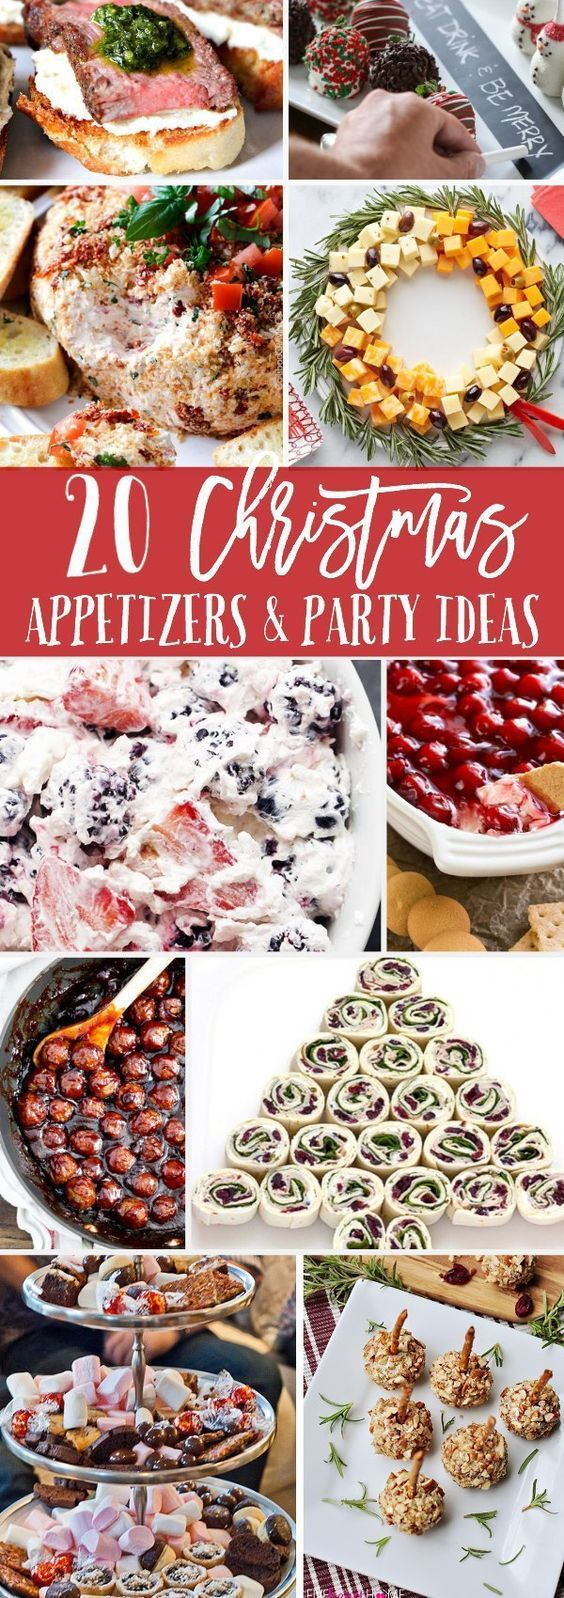 Christmas Appetizers and Party Ideas. Amazing and delicious Christmas recipes to try this holiday!